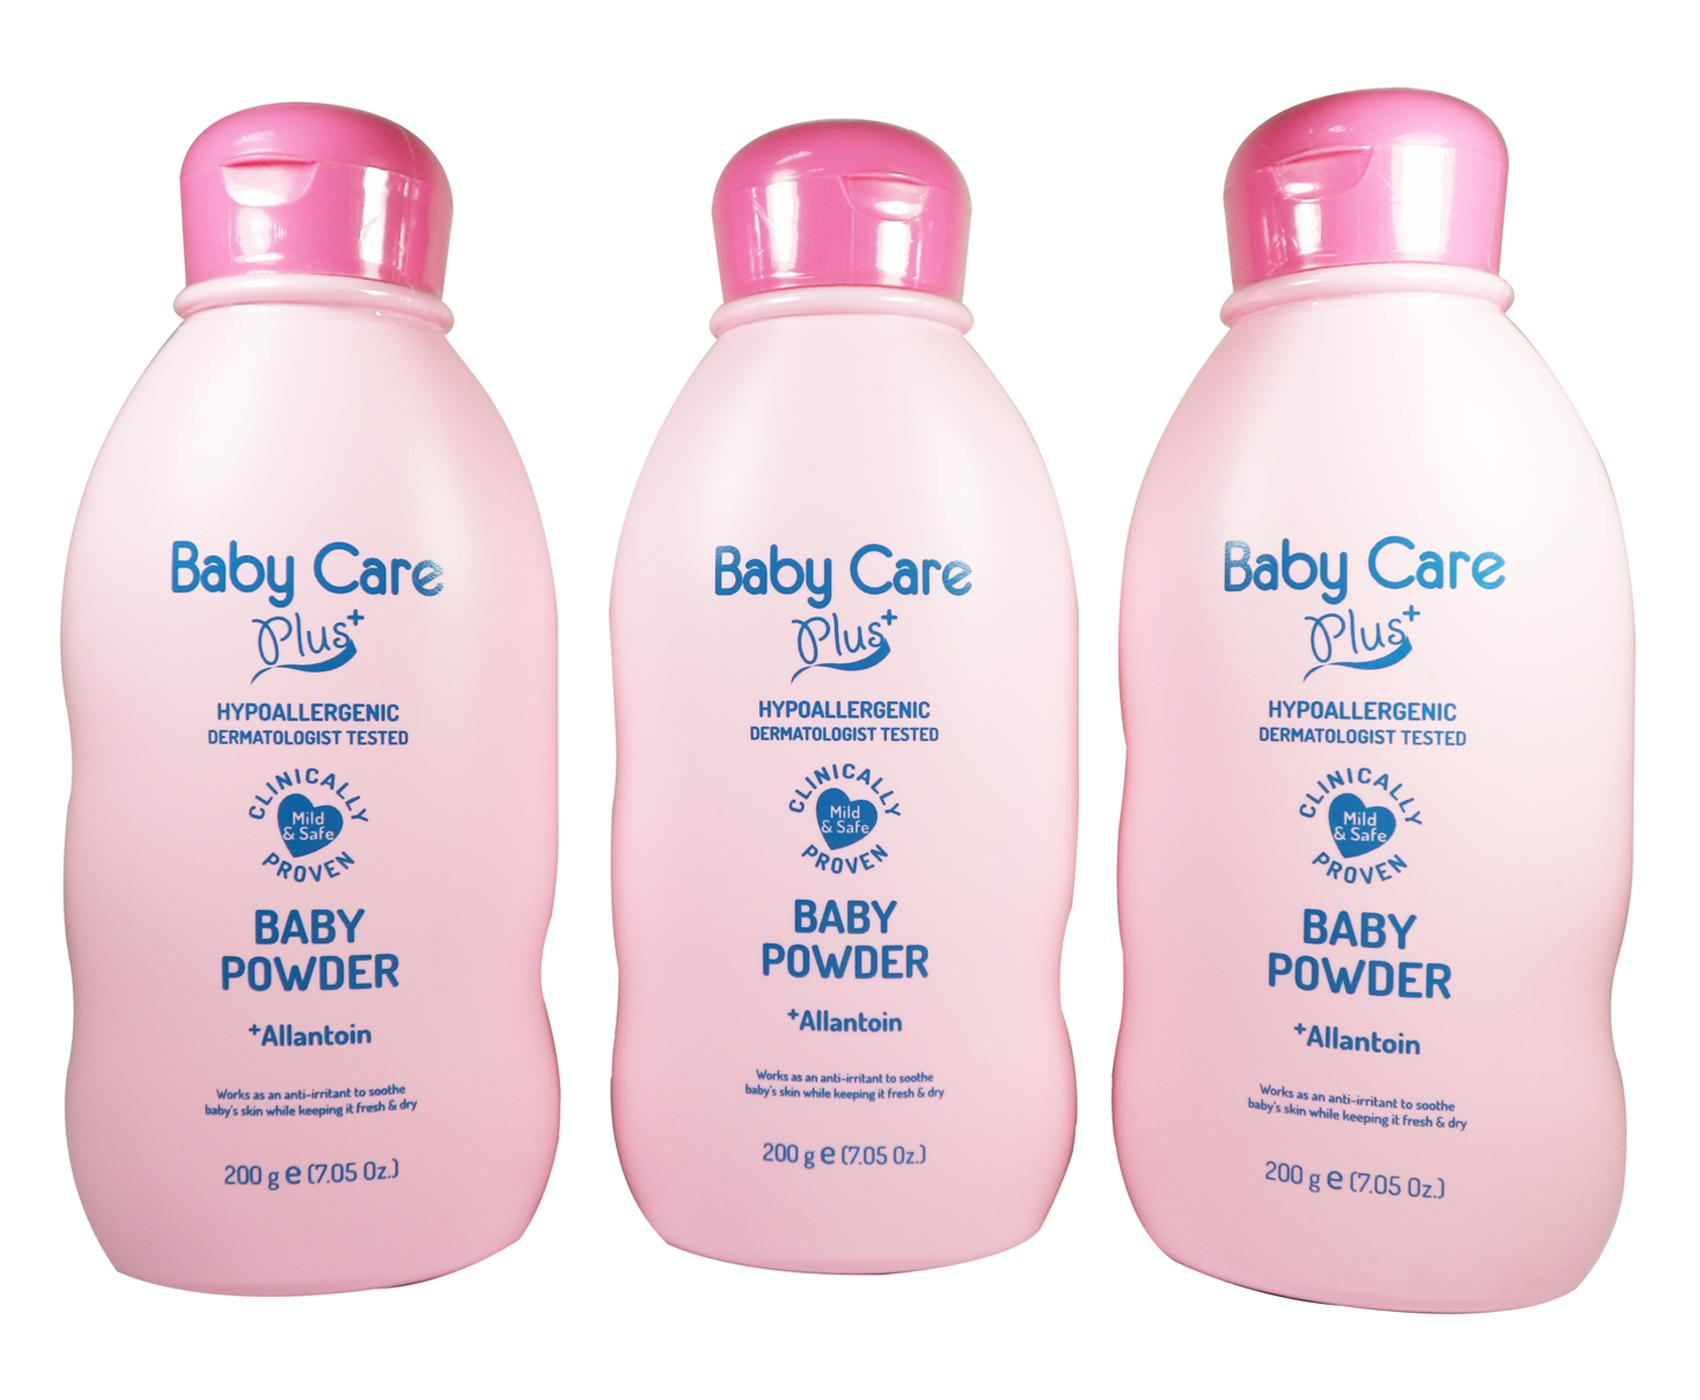 Baby Care Plus Baby Powder Pink with Allantoin Set of 3 200g